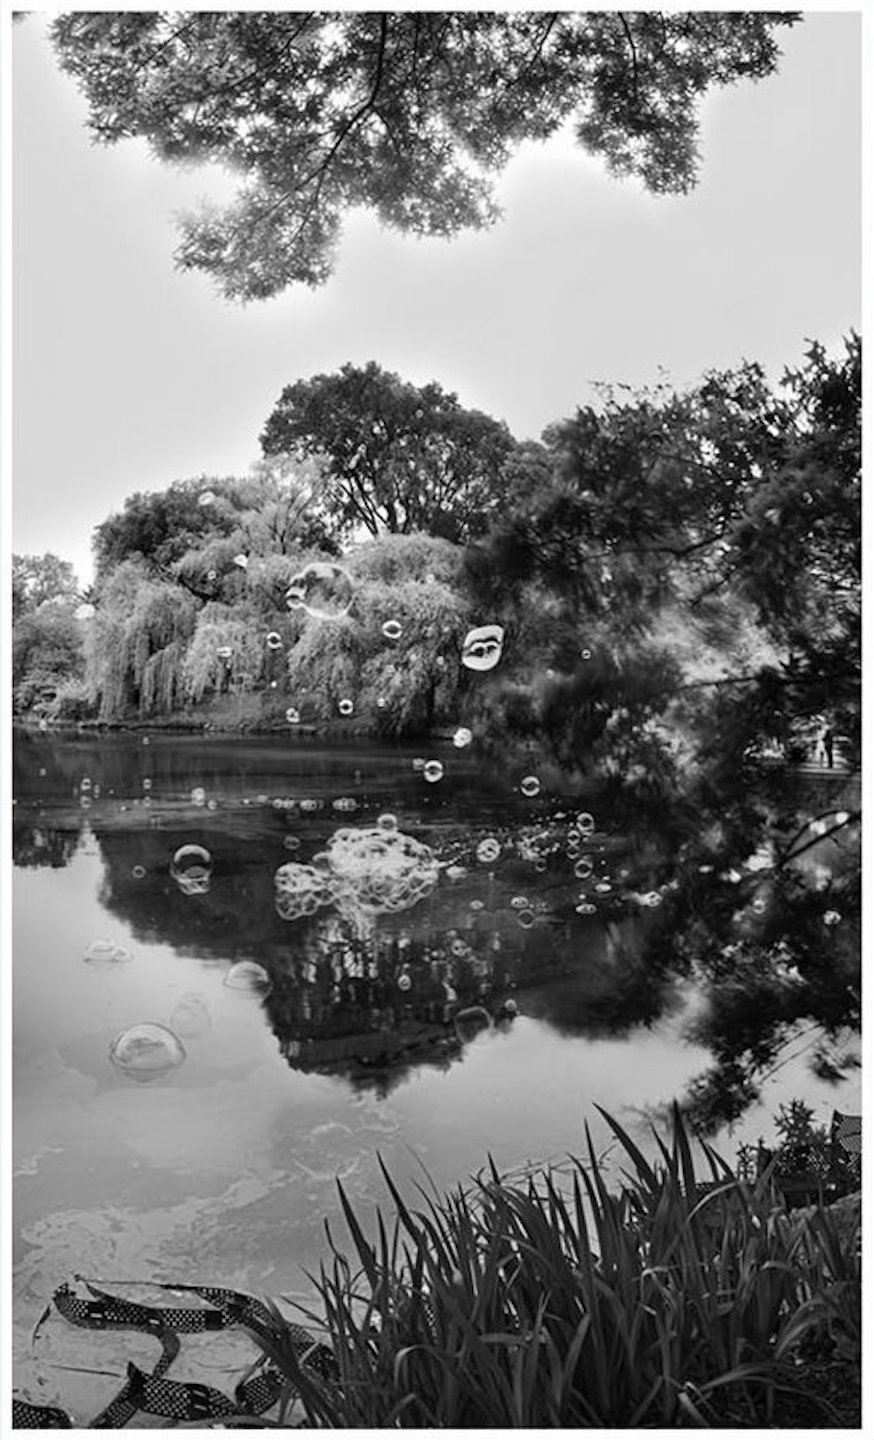 Jeff Liao: Central Park New York, Special Limited Edition (with 4 Prints)